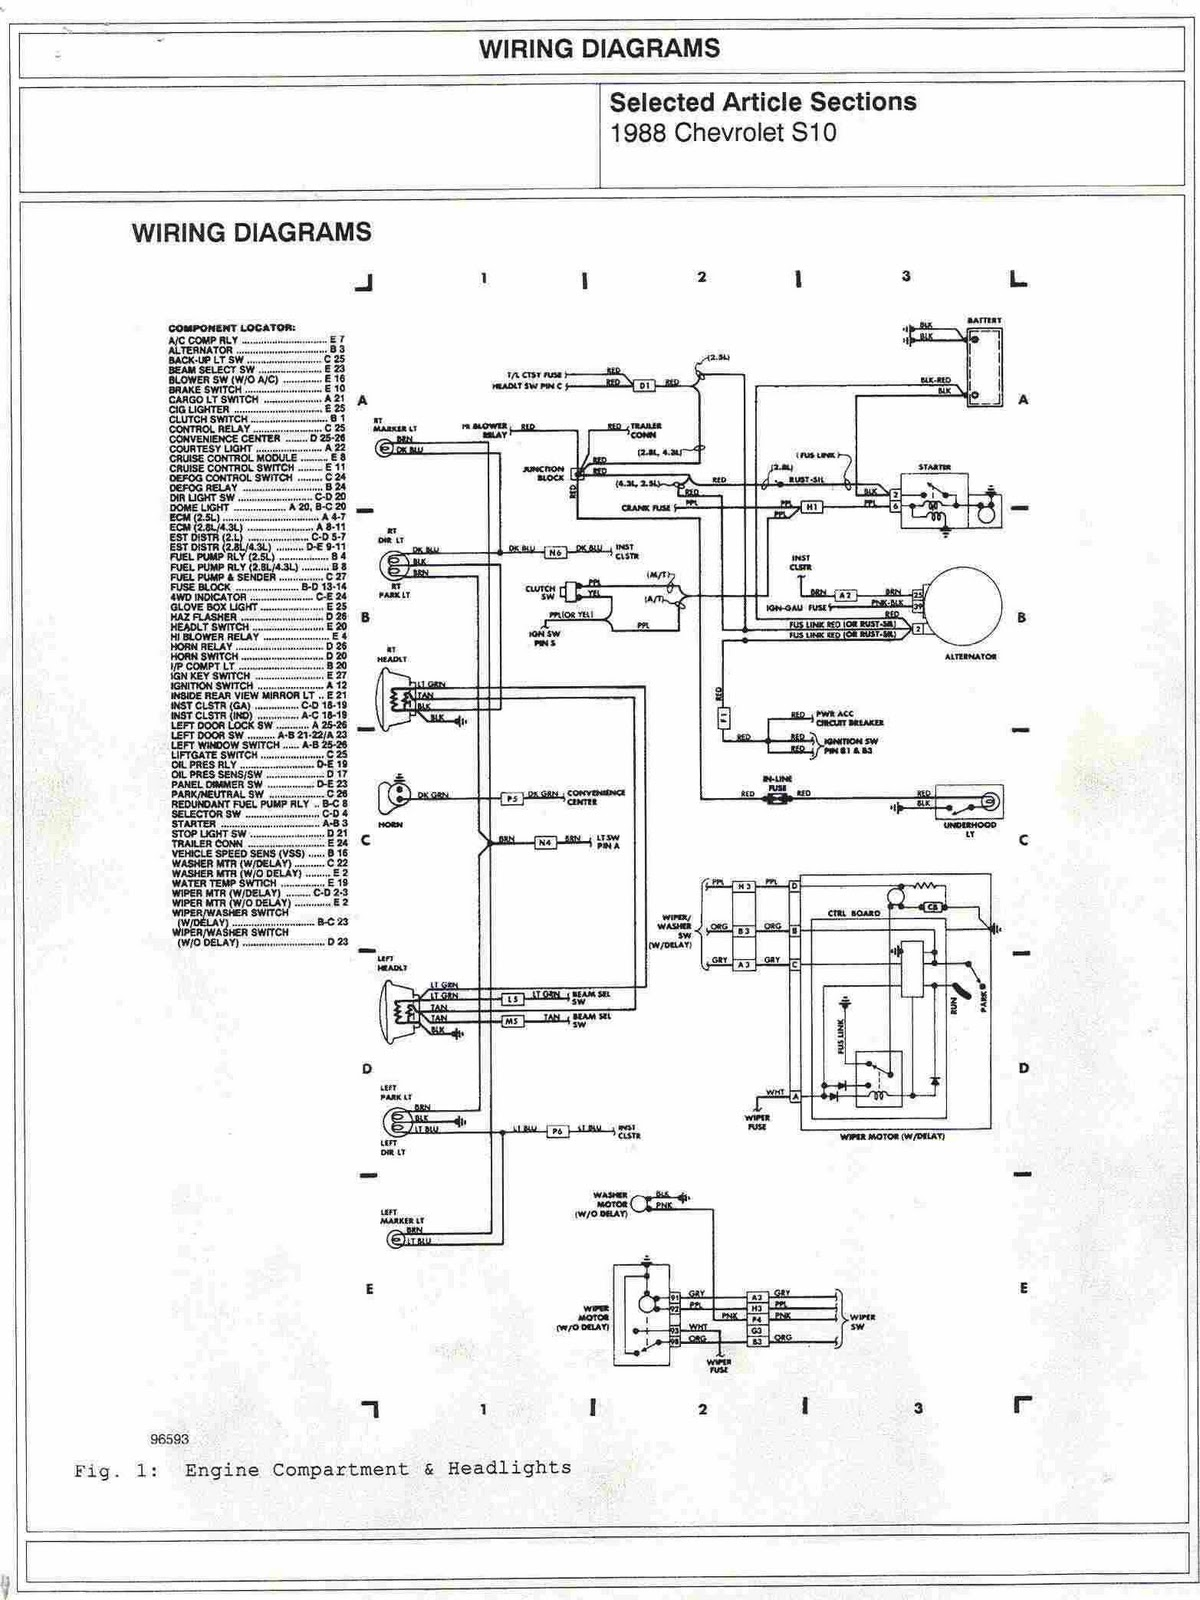 1988+Chevrolet+S10+Engine+Compartment+and+Headlights+Wiring+Diagrams 1988 chevy truck wiring diagram truck wiring schematics \u2022 wiring 1992 chevy silverado wiring diagram at alyssarenee.co